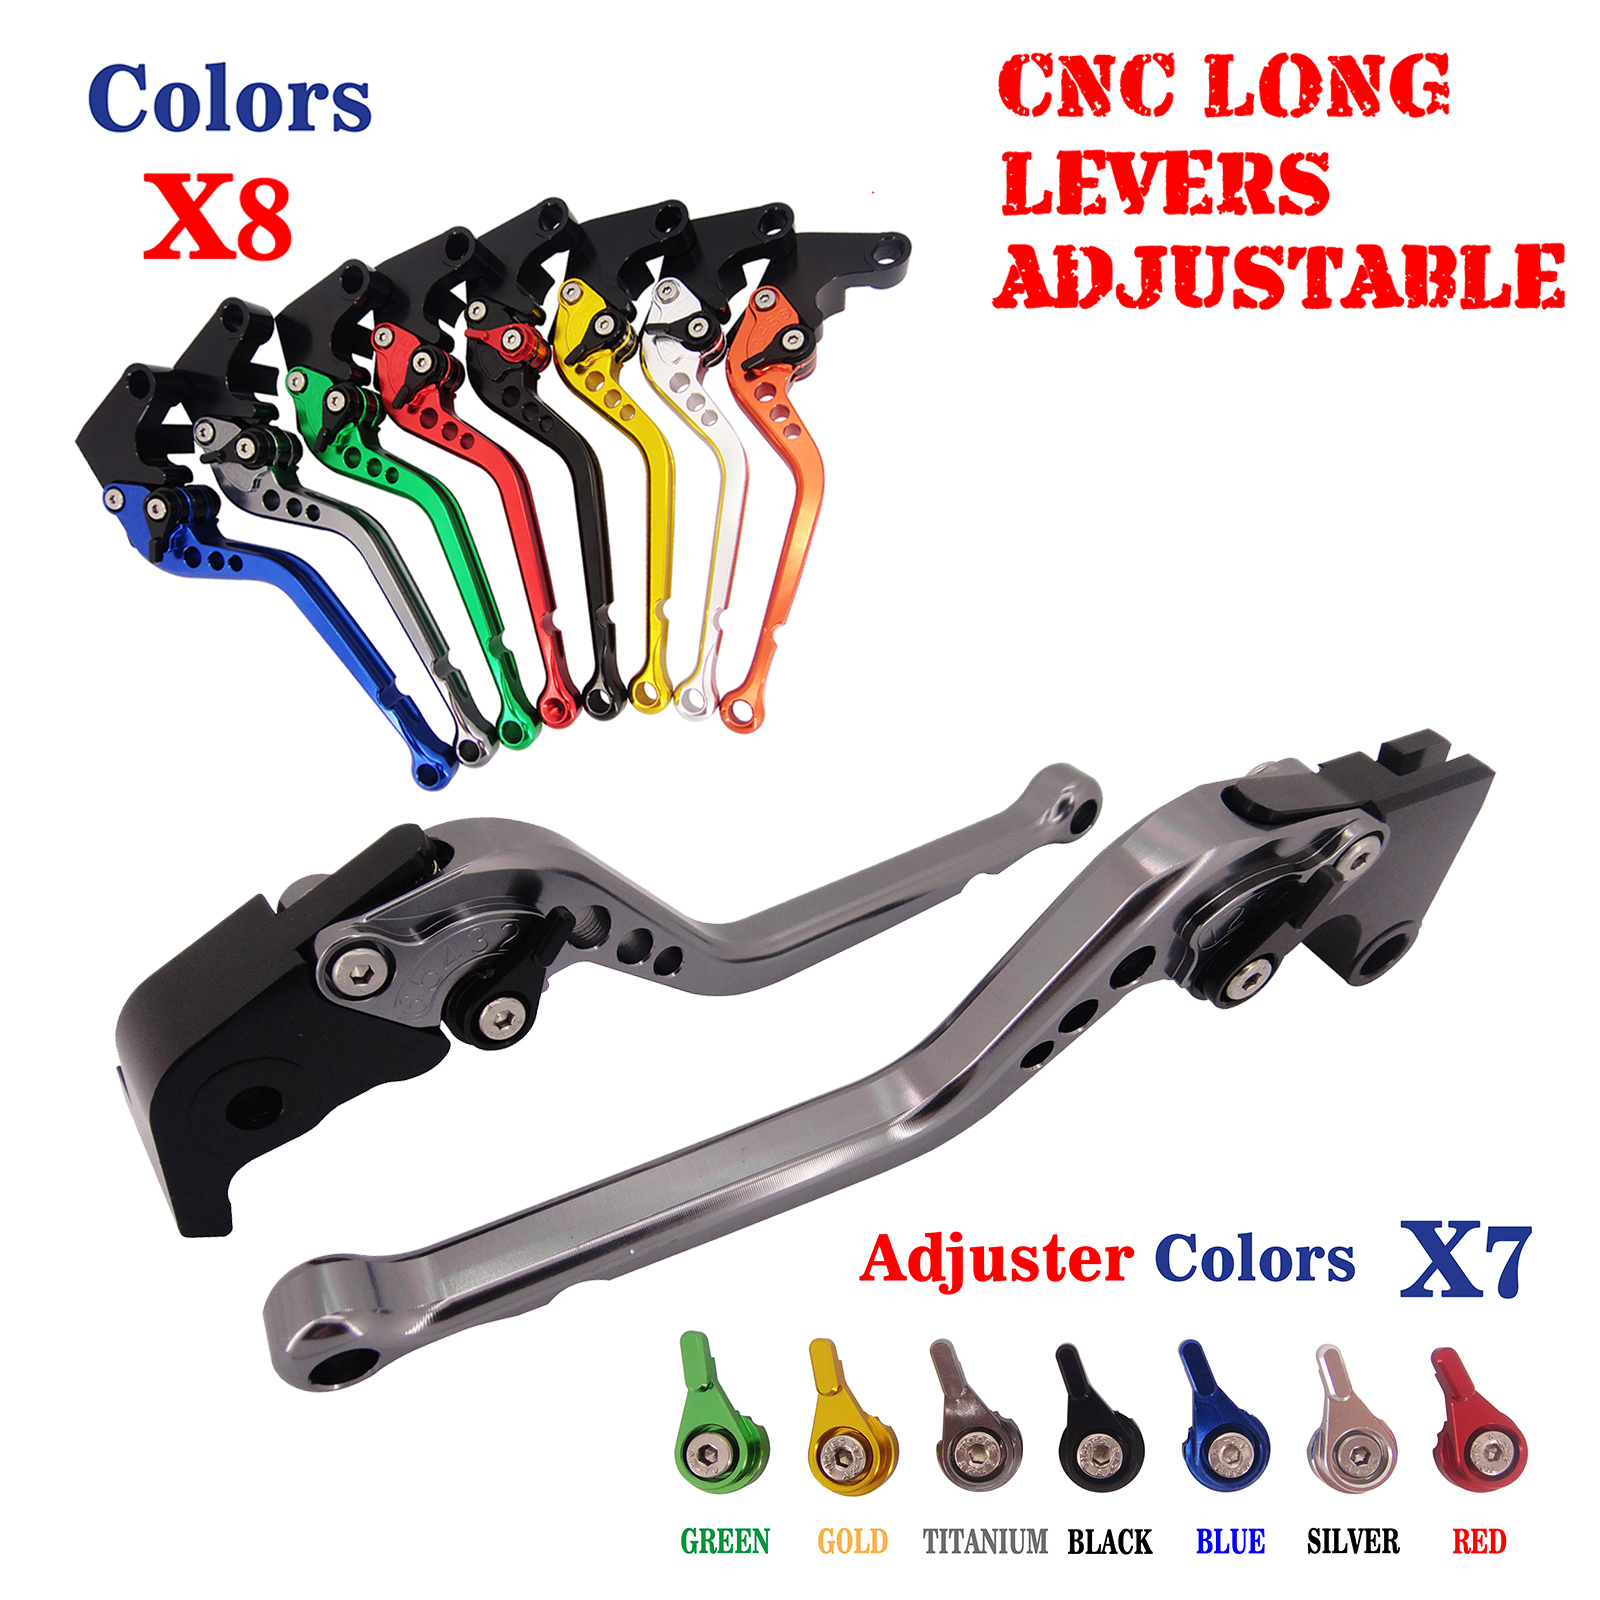 CNC Long Adjusatable Brake Clutch Lever For Yamaha TDM850 1991-2001 XJ900S Diversion 1995-2002 FZX250 Zeal 1991 1992 new keoghs real adelin 260mm floating brake disc high quality for yamaha scooter cygnus modify